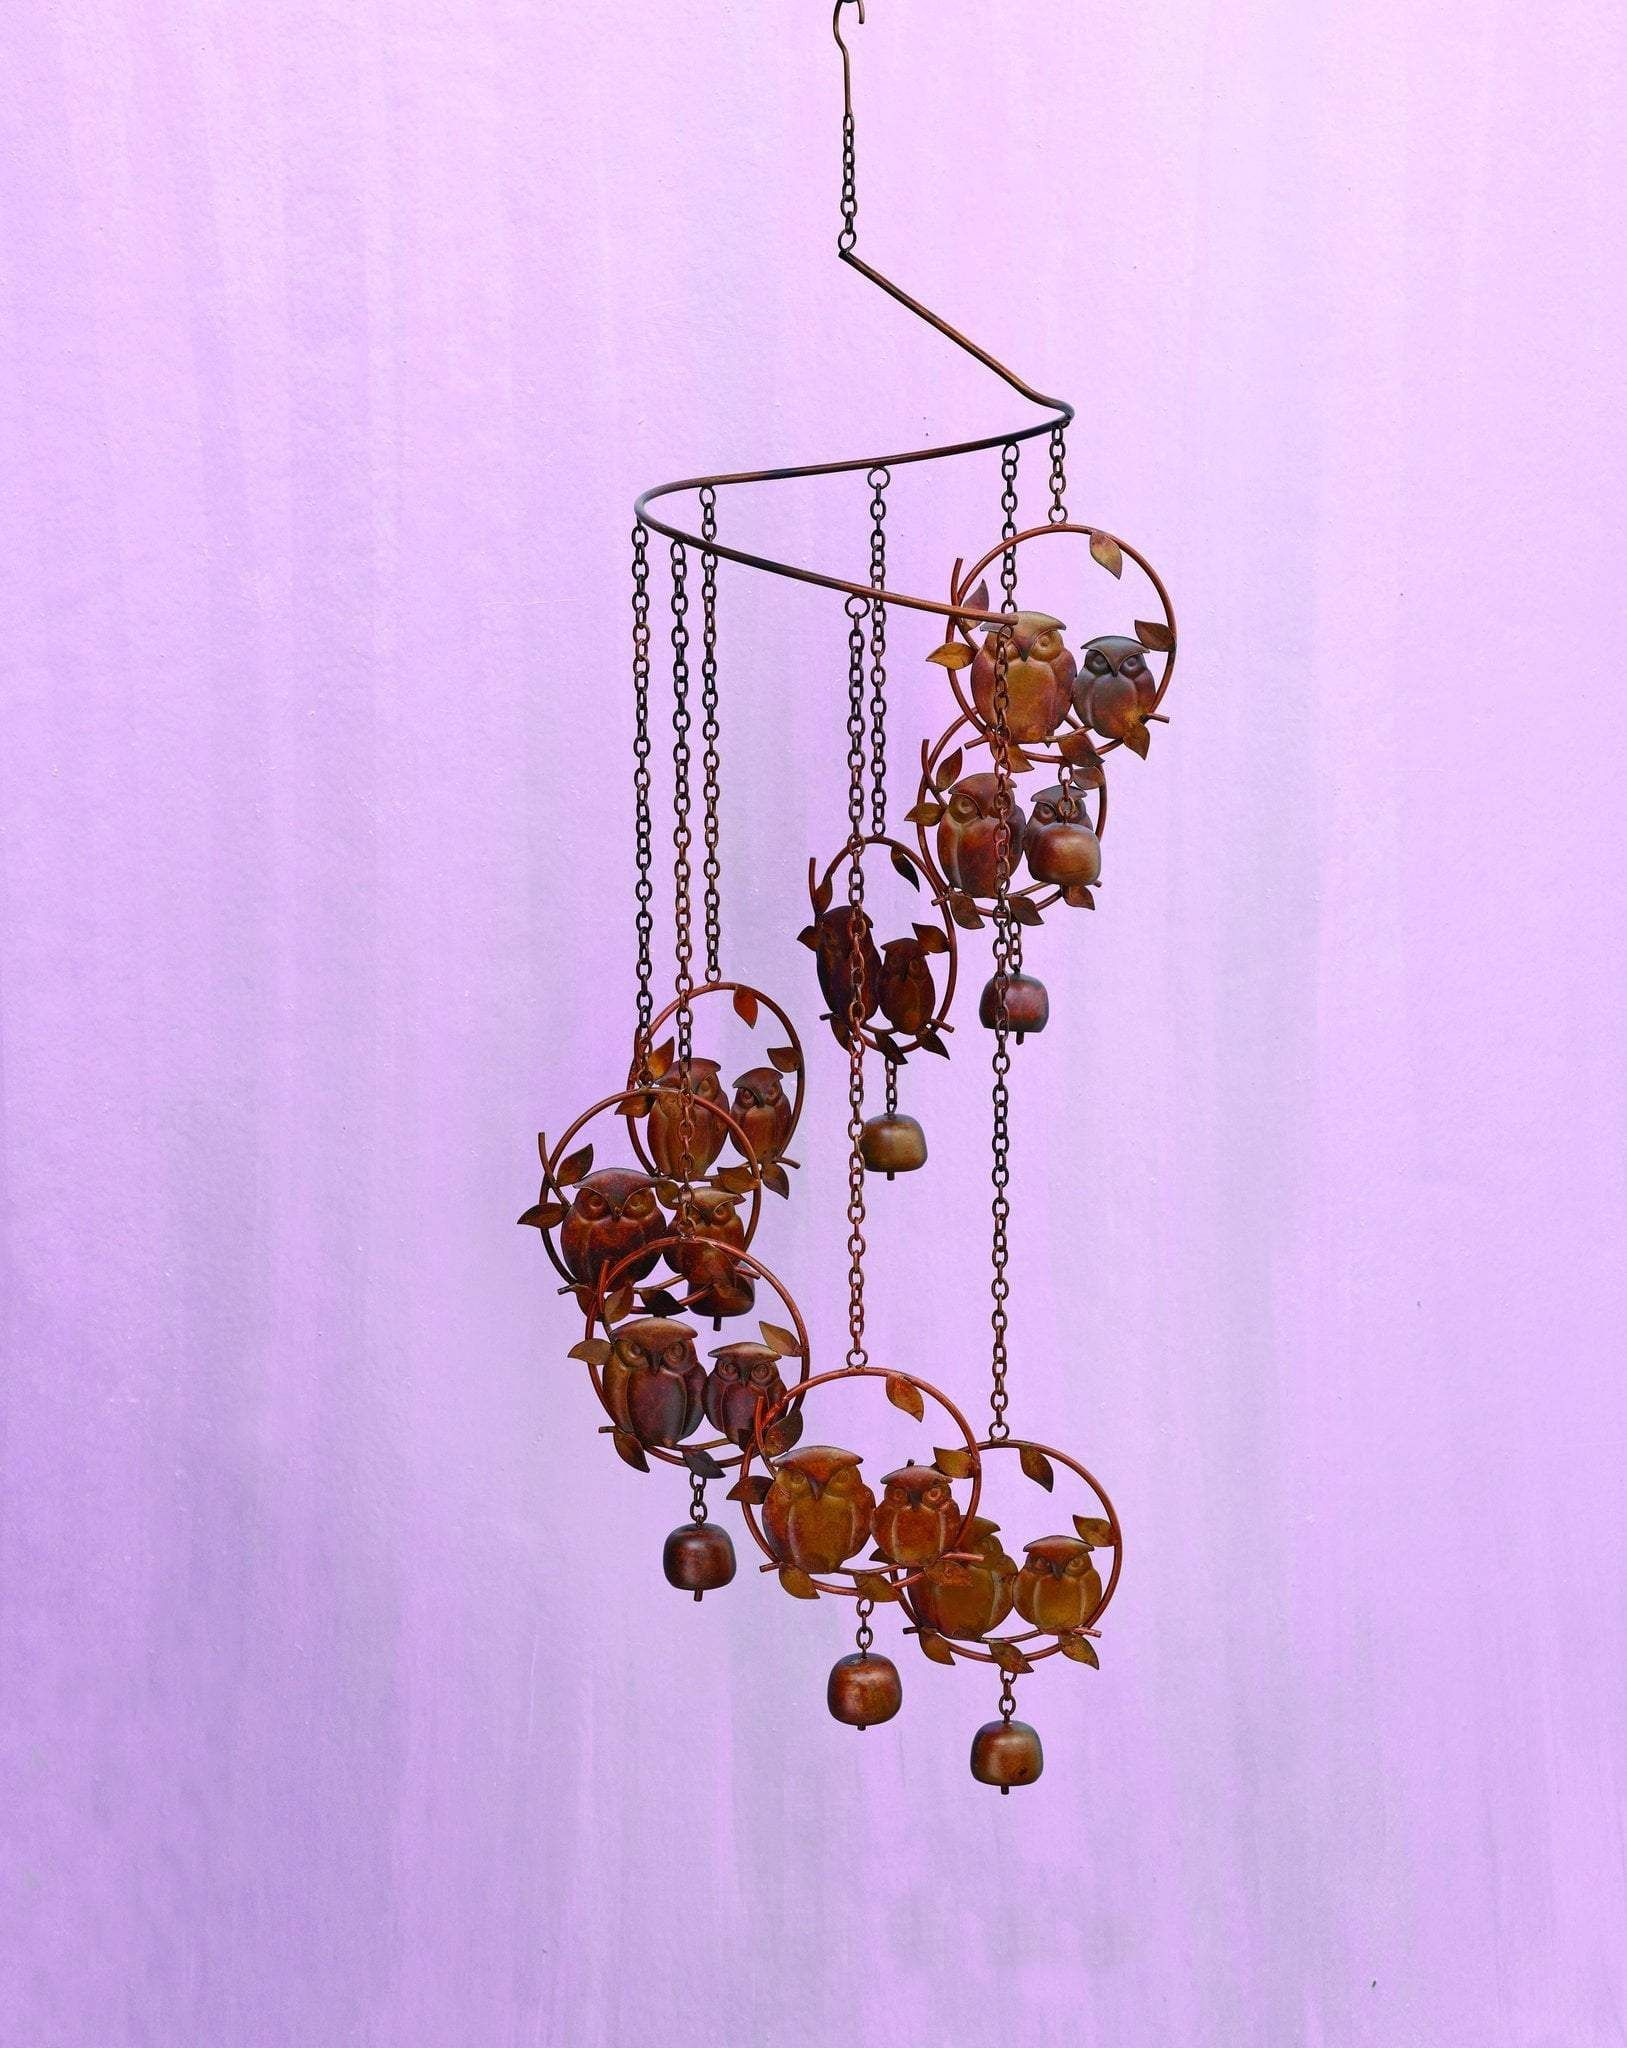 Hanging Mobile Spiralling Dragonfly Garden Chime With Bells